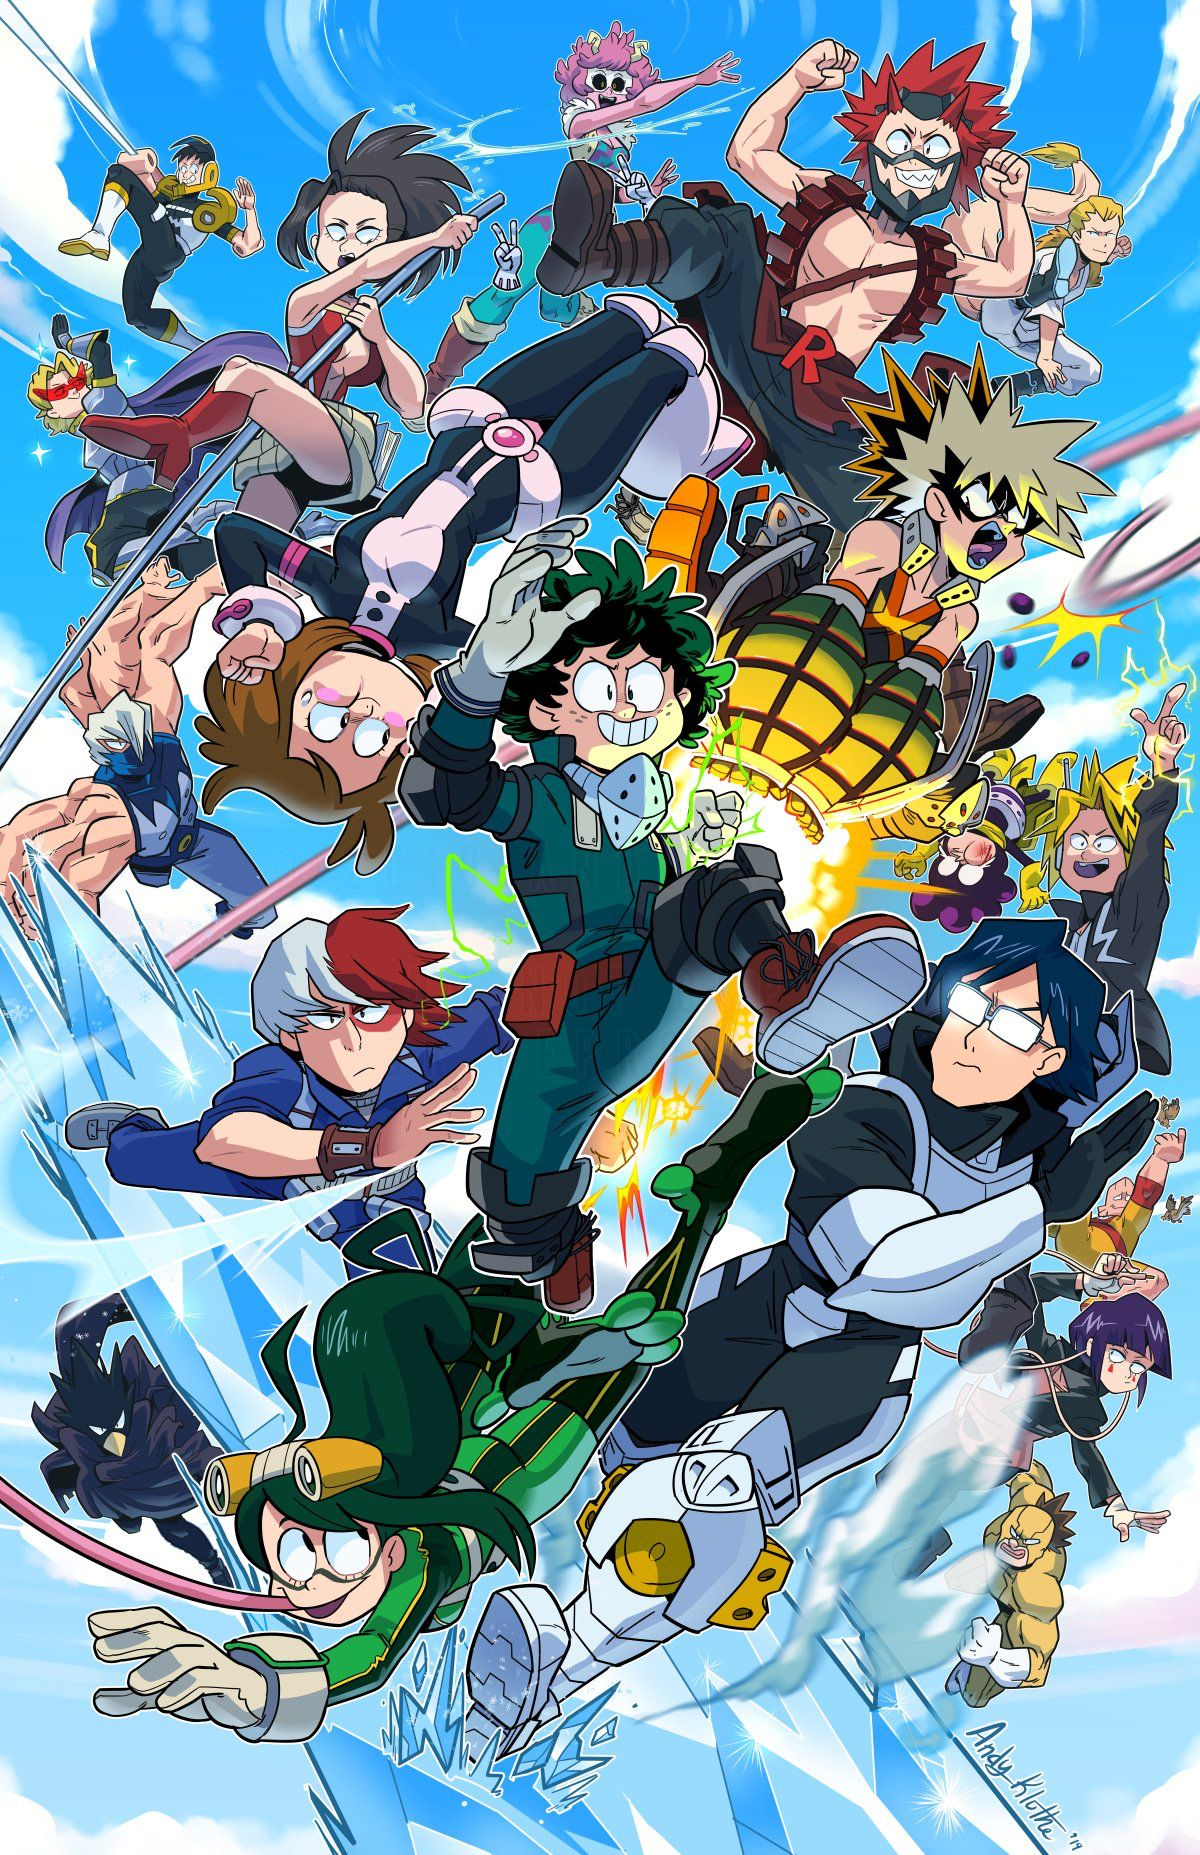 Mha cartoon style My hero, Hero, Hero academia characters